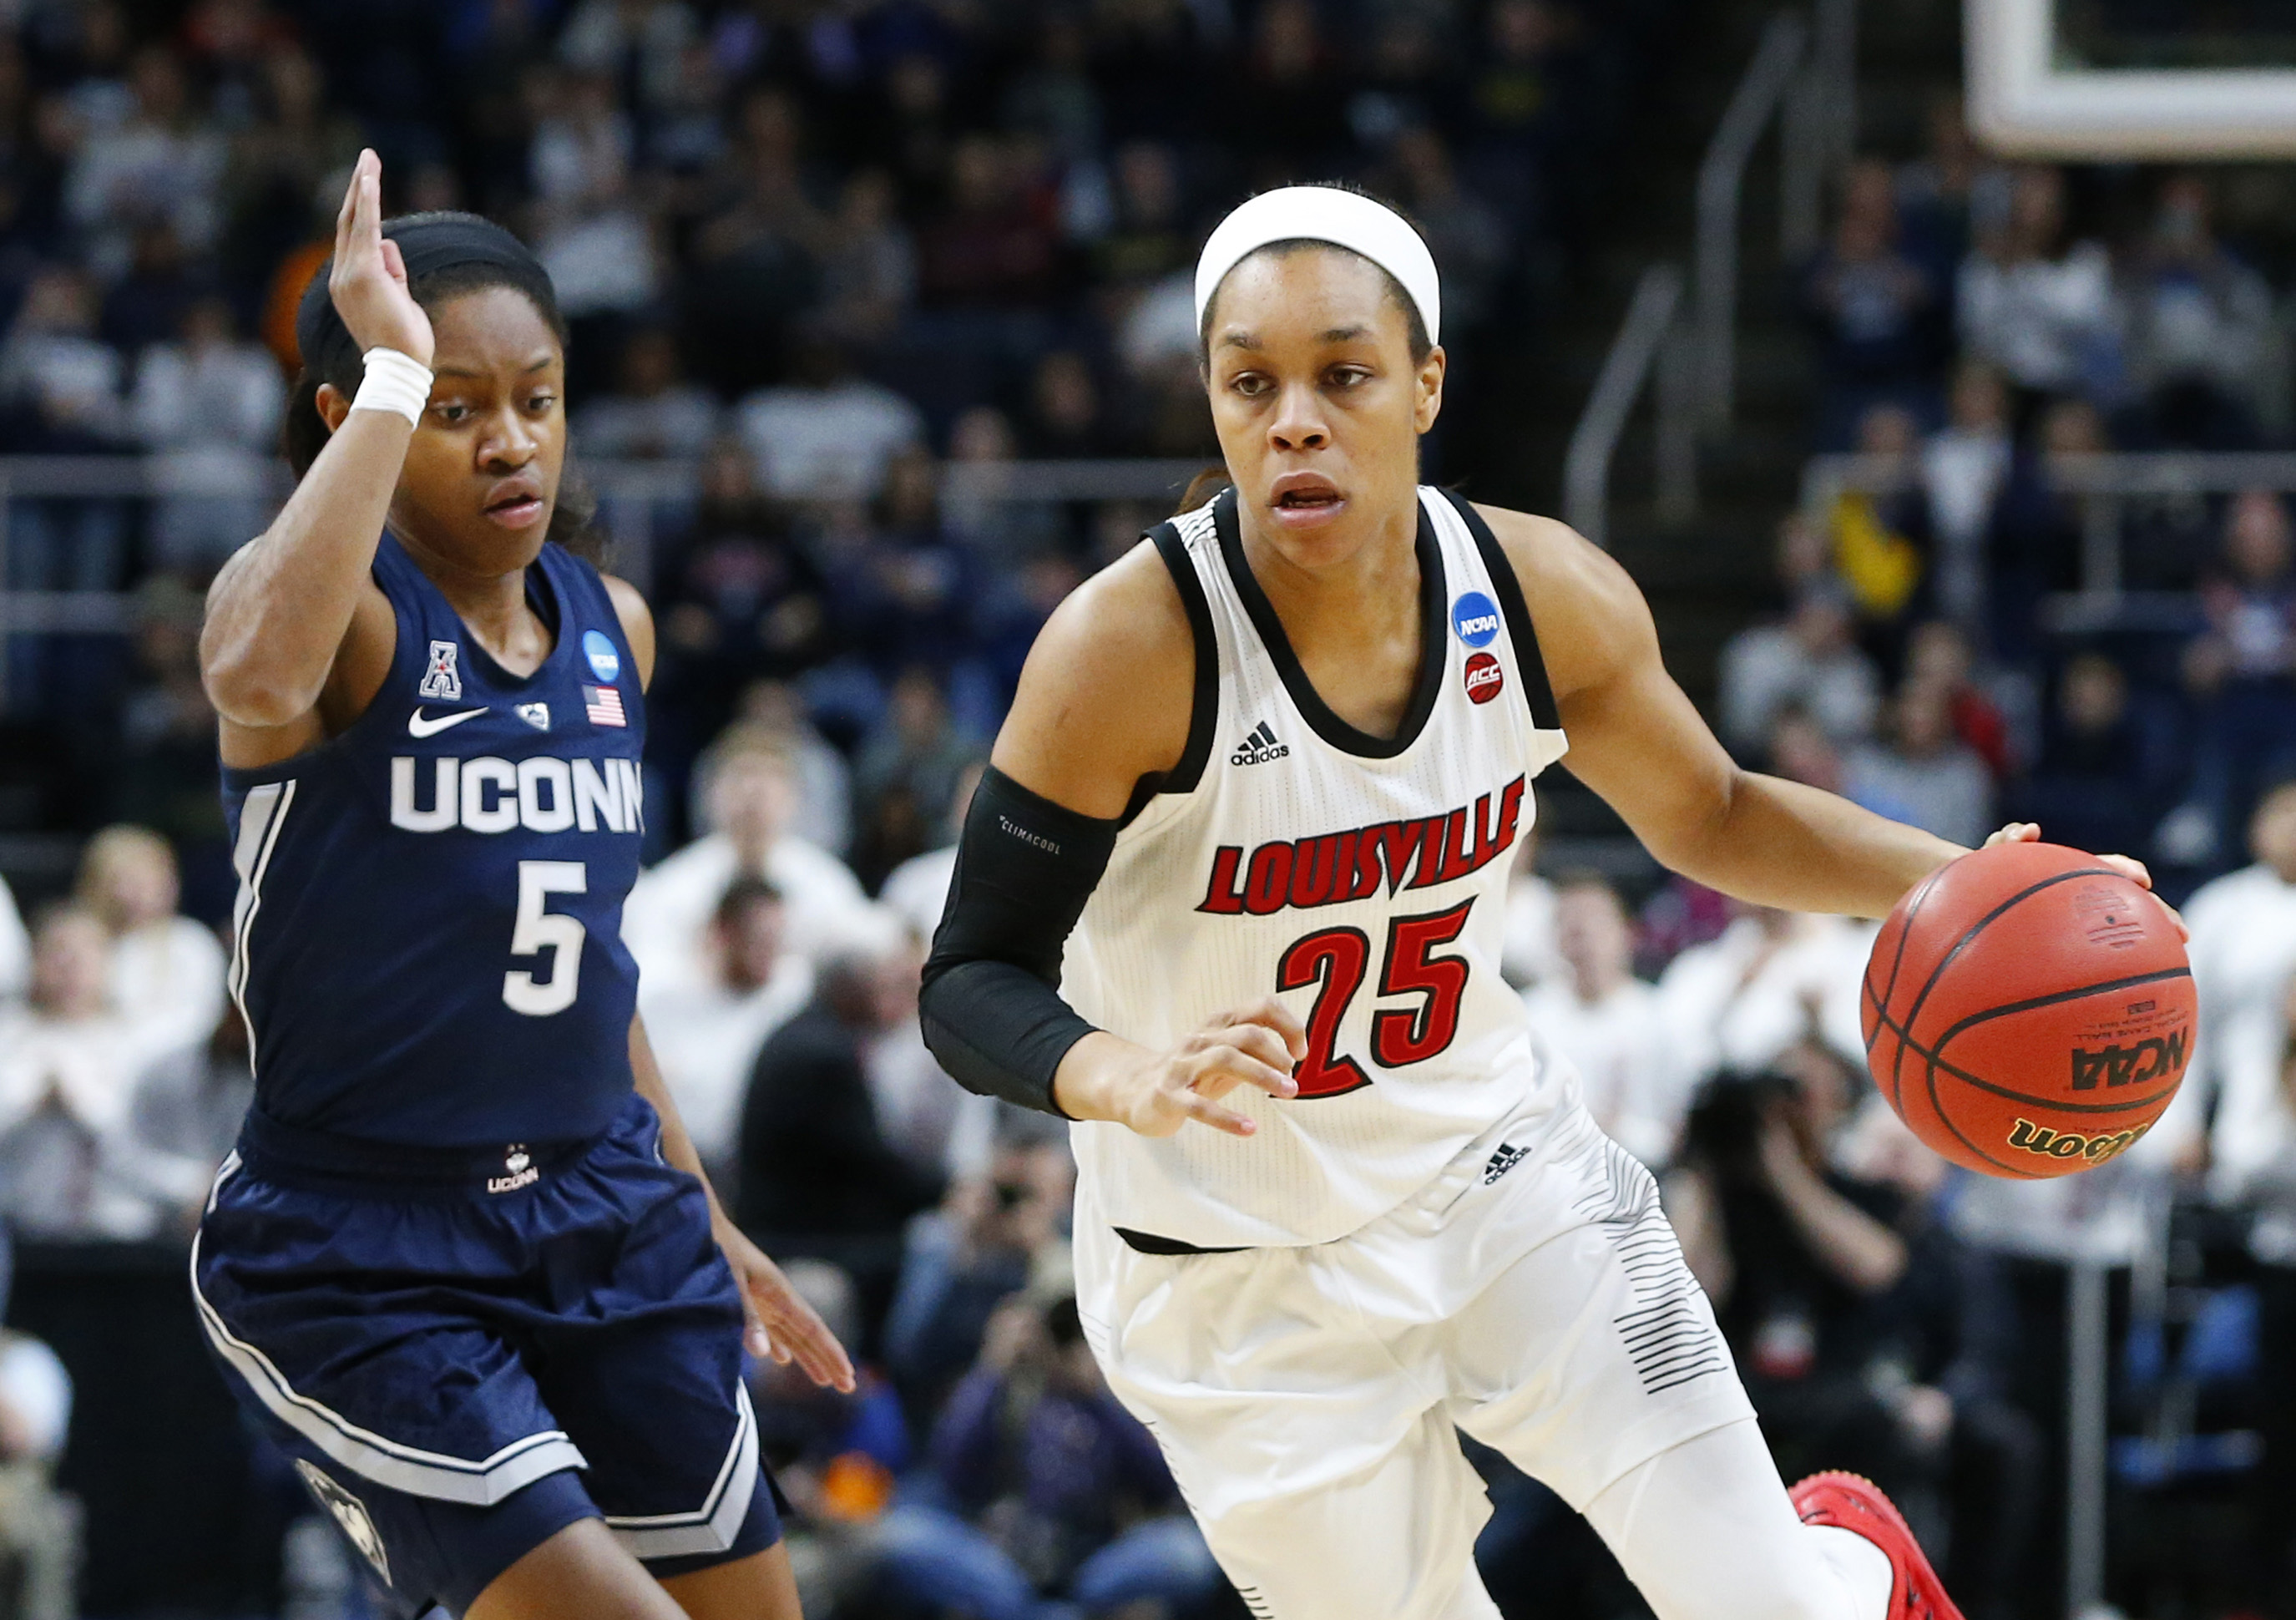 e44a891ccd92 How NCAAW Tournament losses affected these 5 prospects  WNBA Draft chances